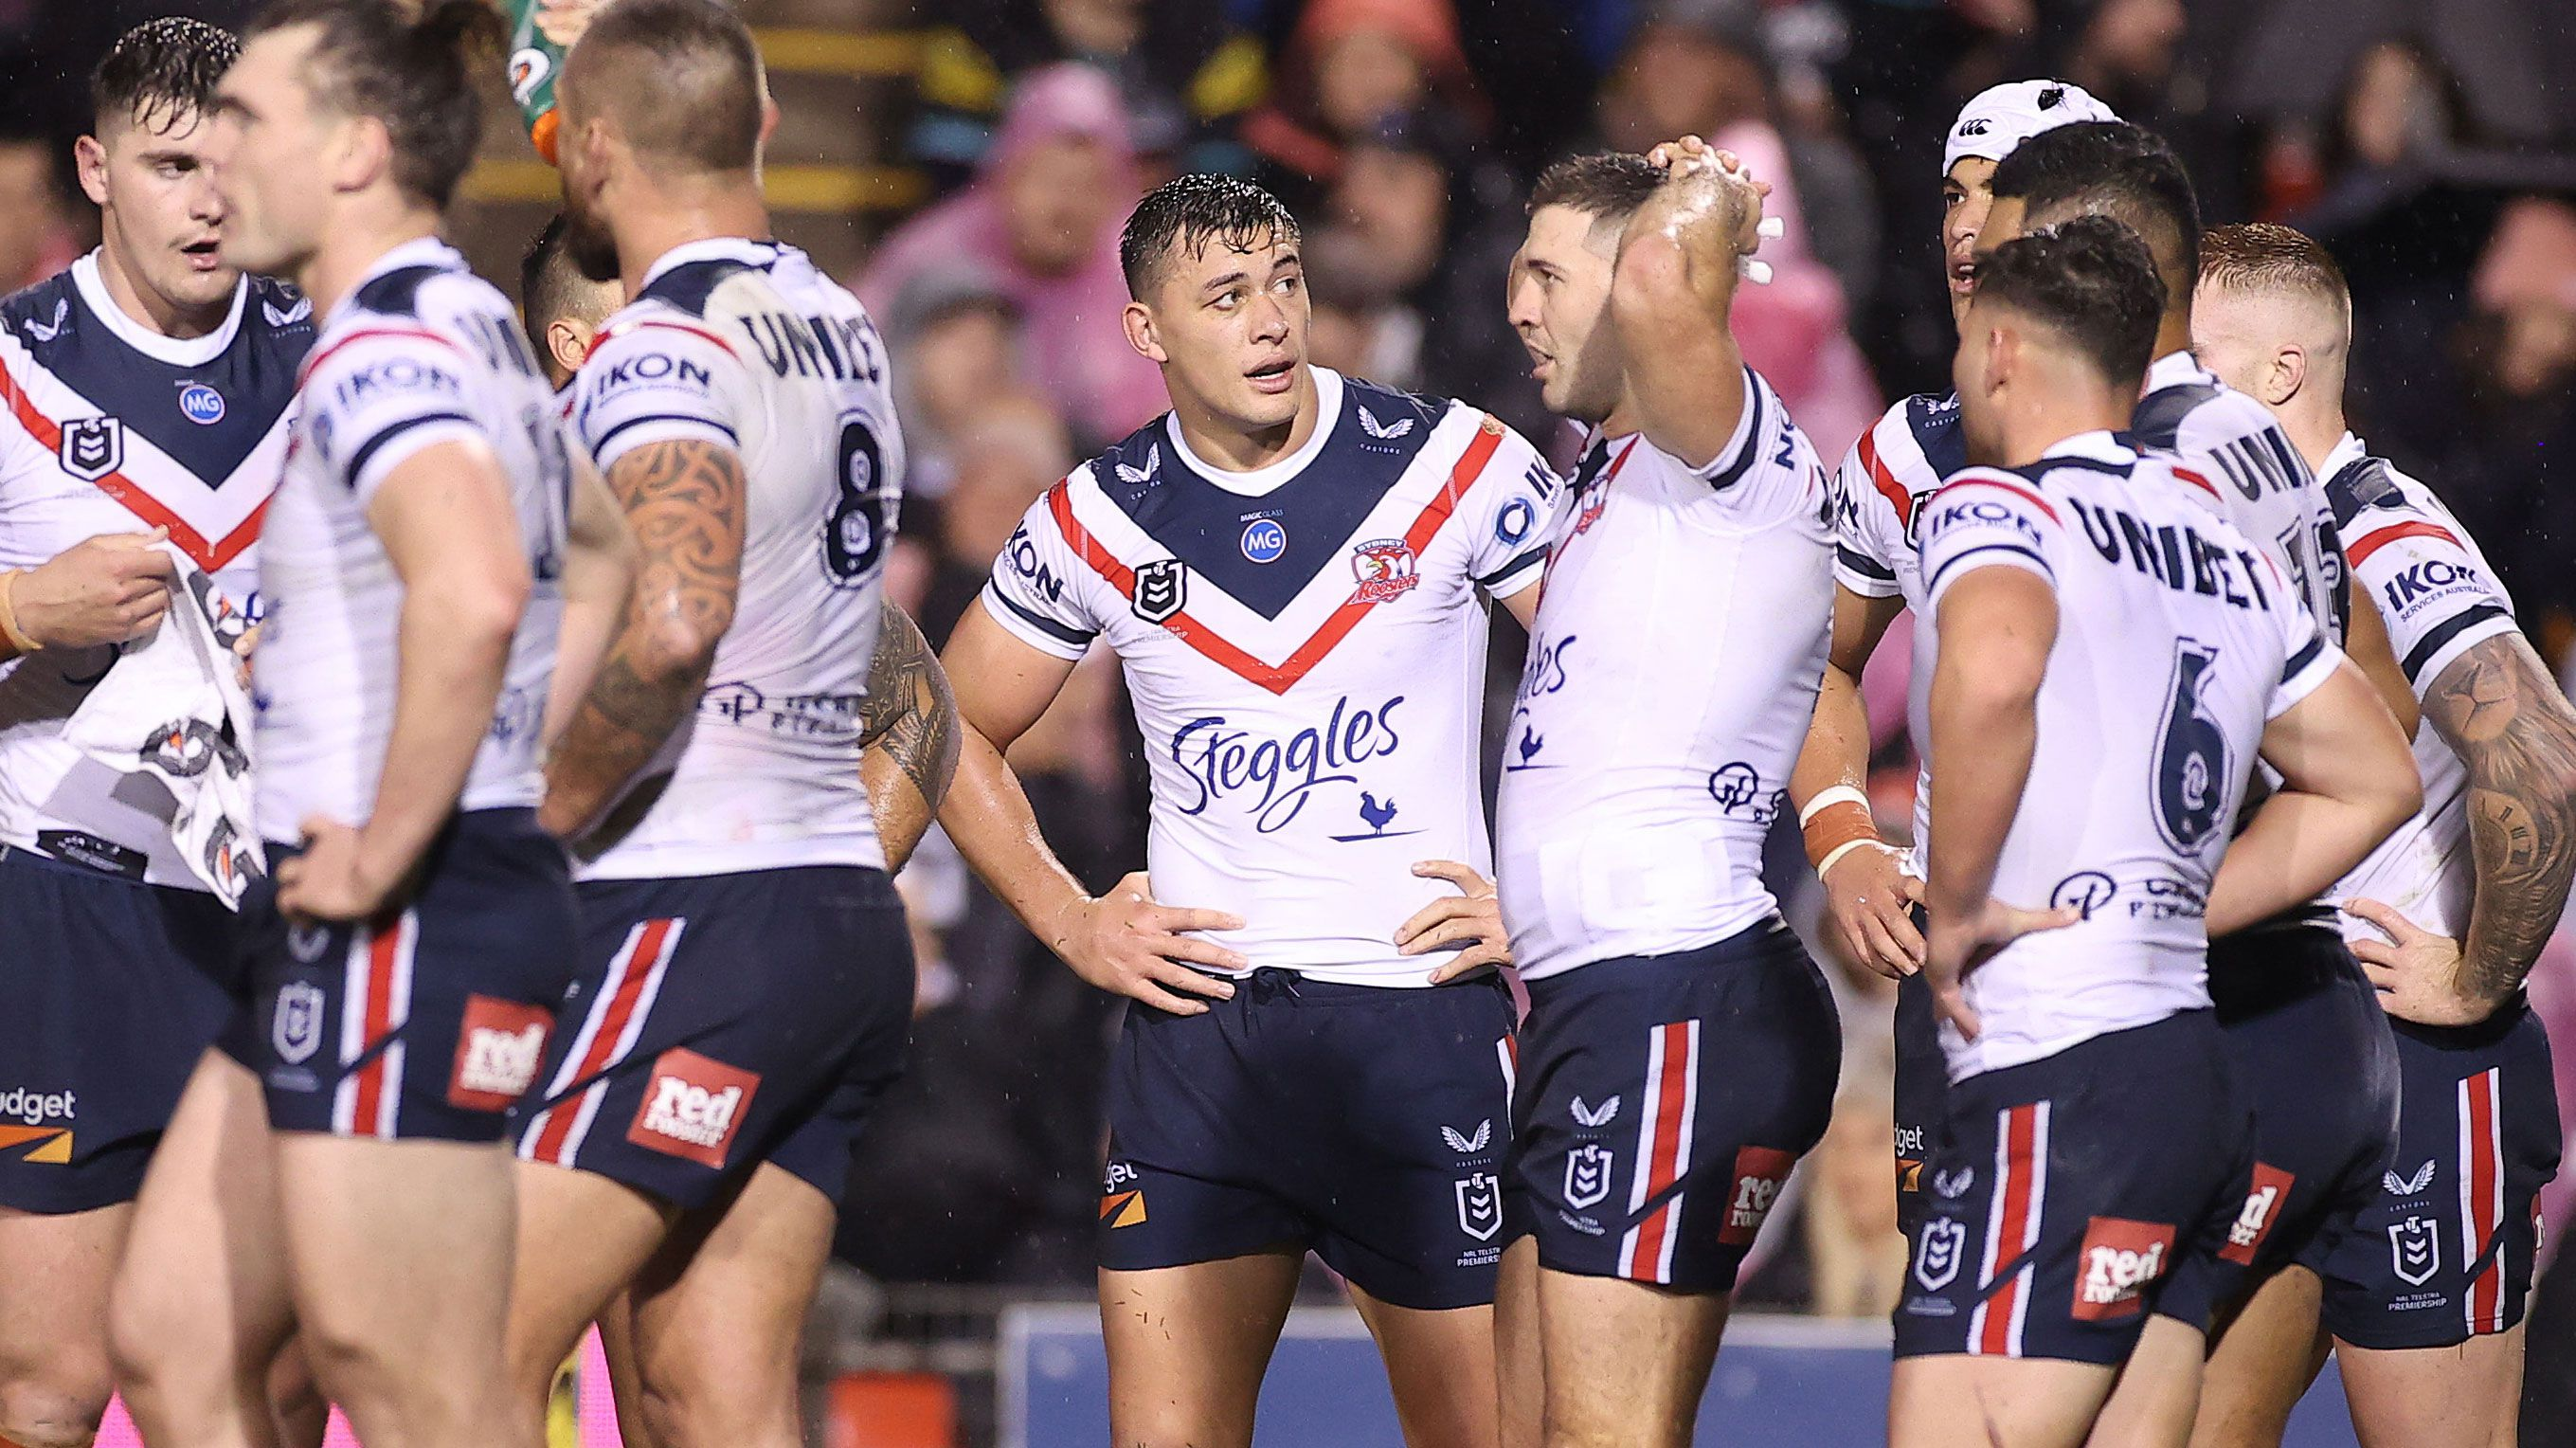 Sydney Roosters players after conceding a try against the Panthers.